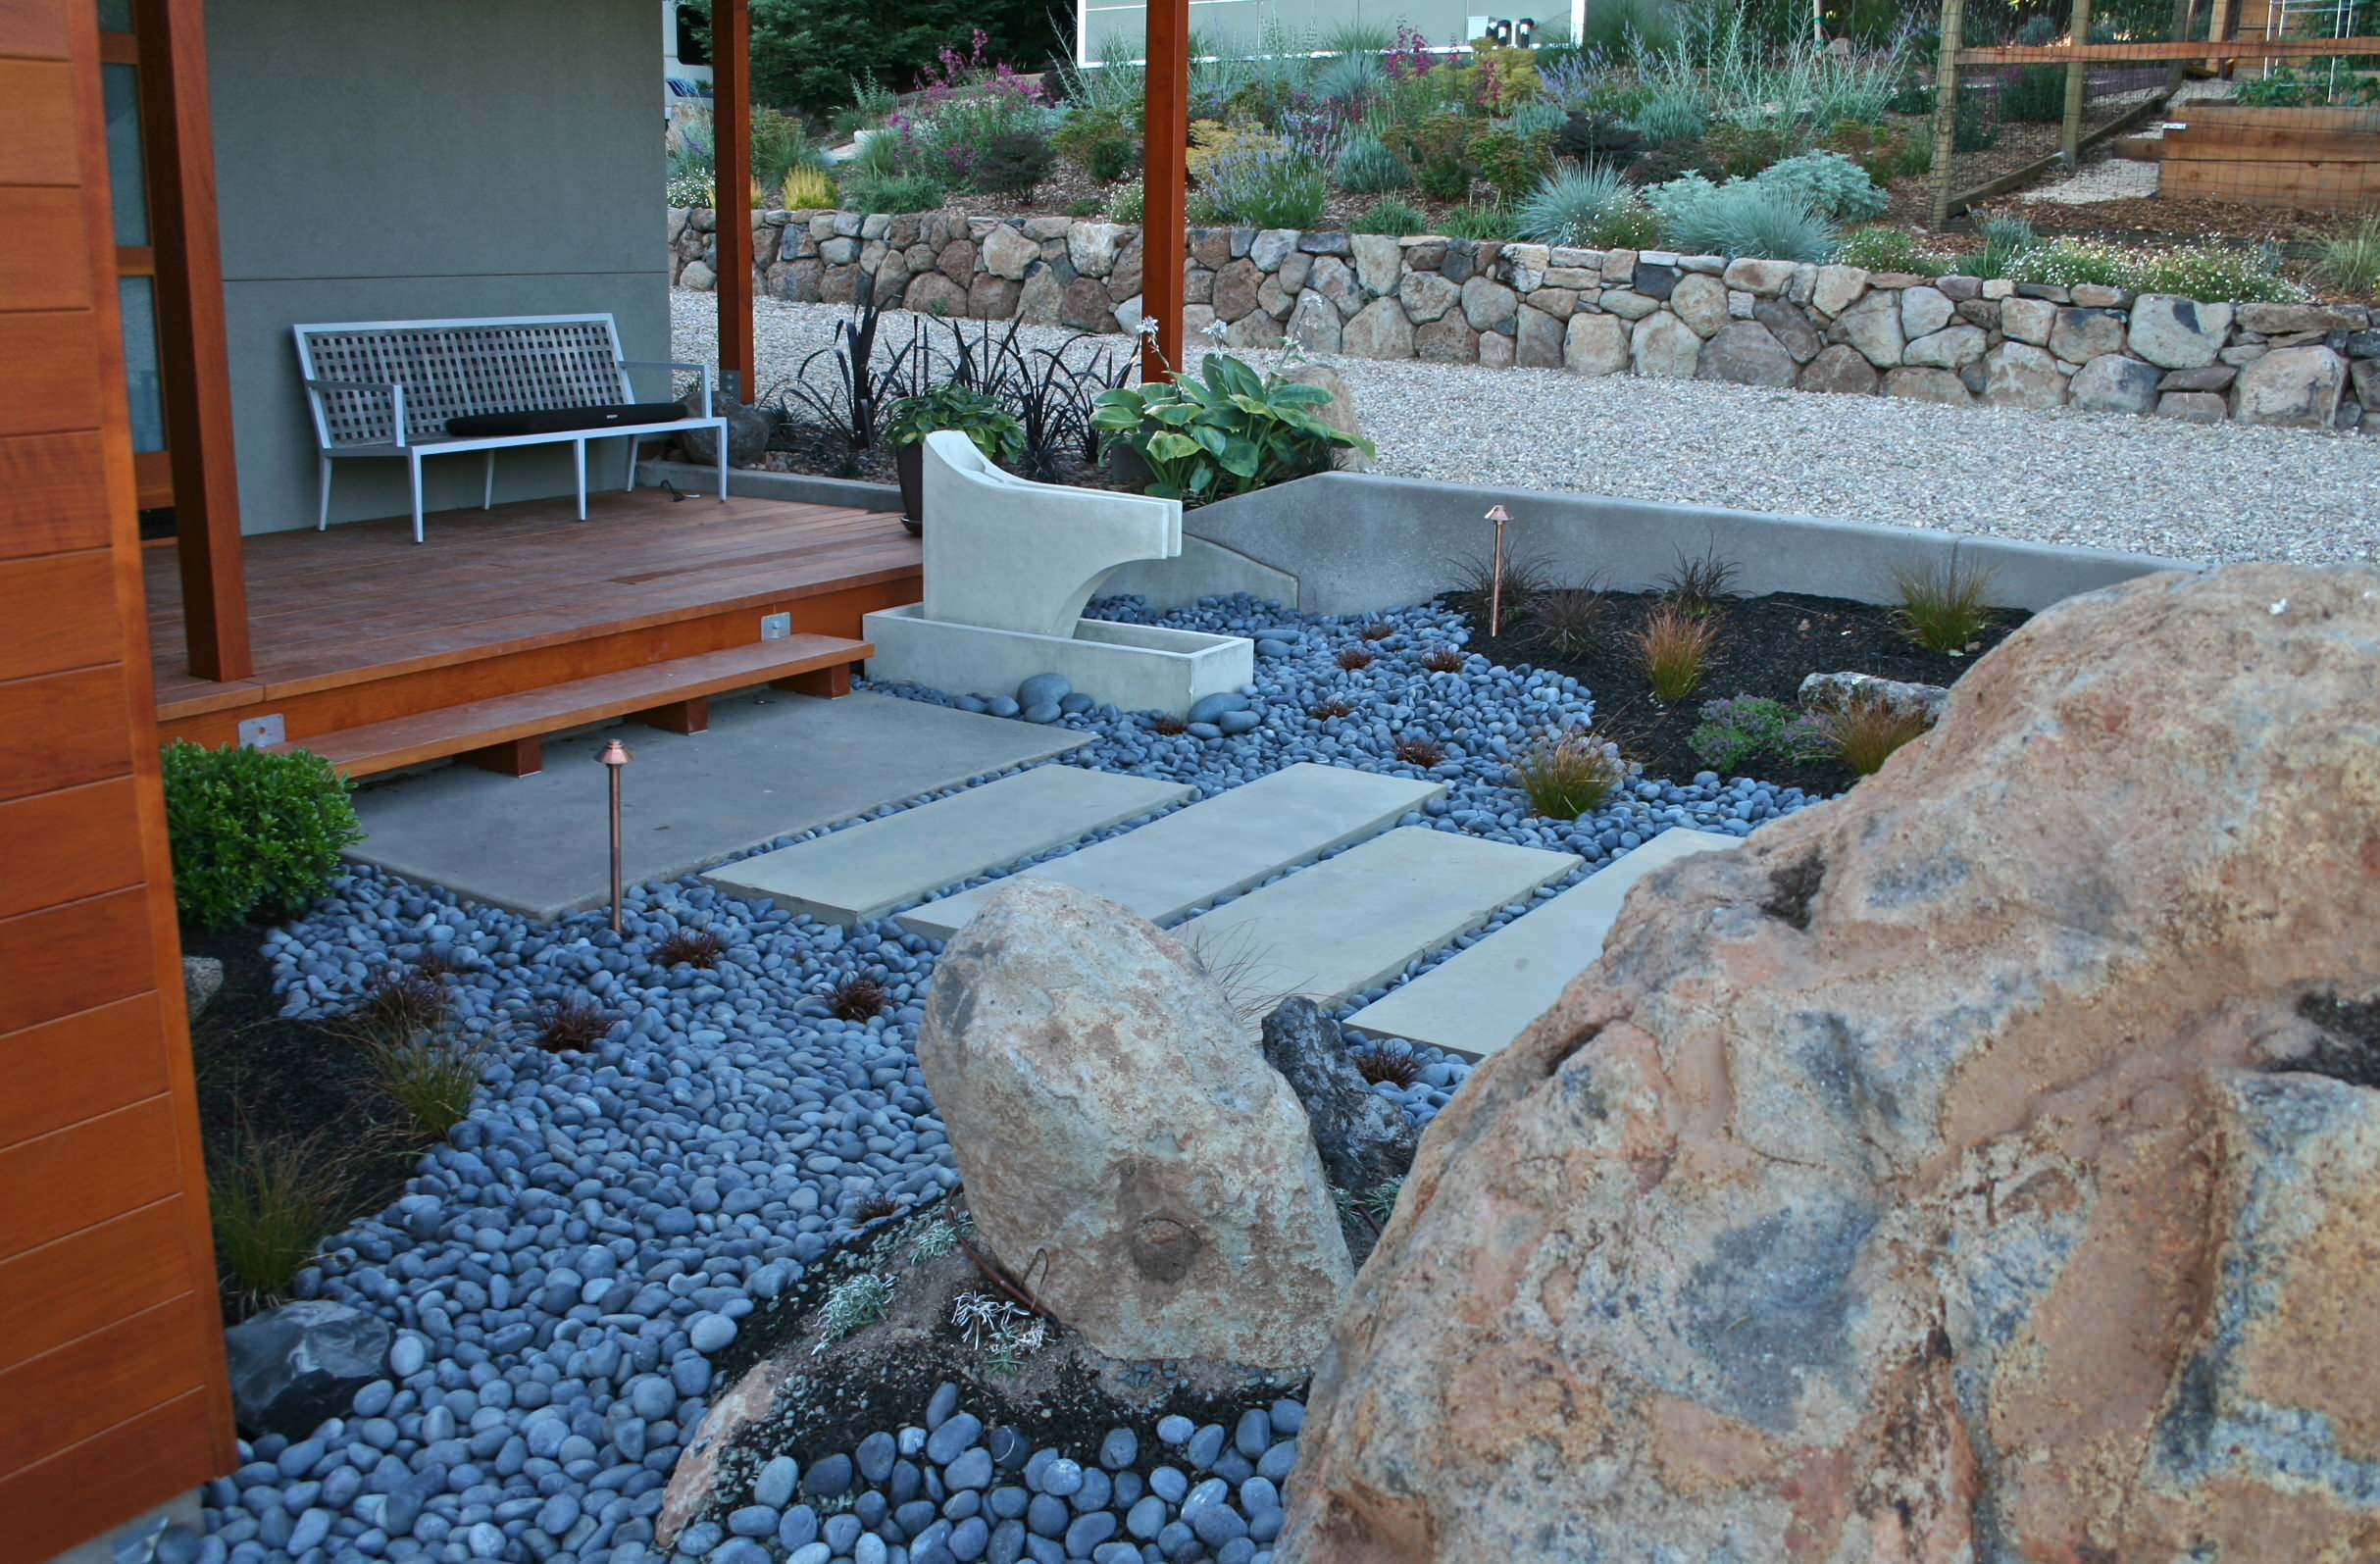 75 Beautiful Contemporary River Rock Landscaping Pictures Ideas March 2021 Houzz